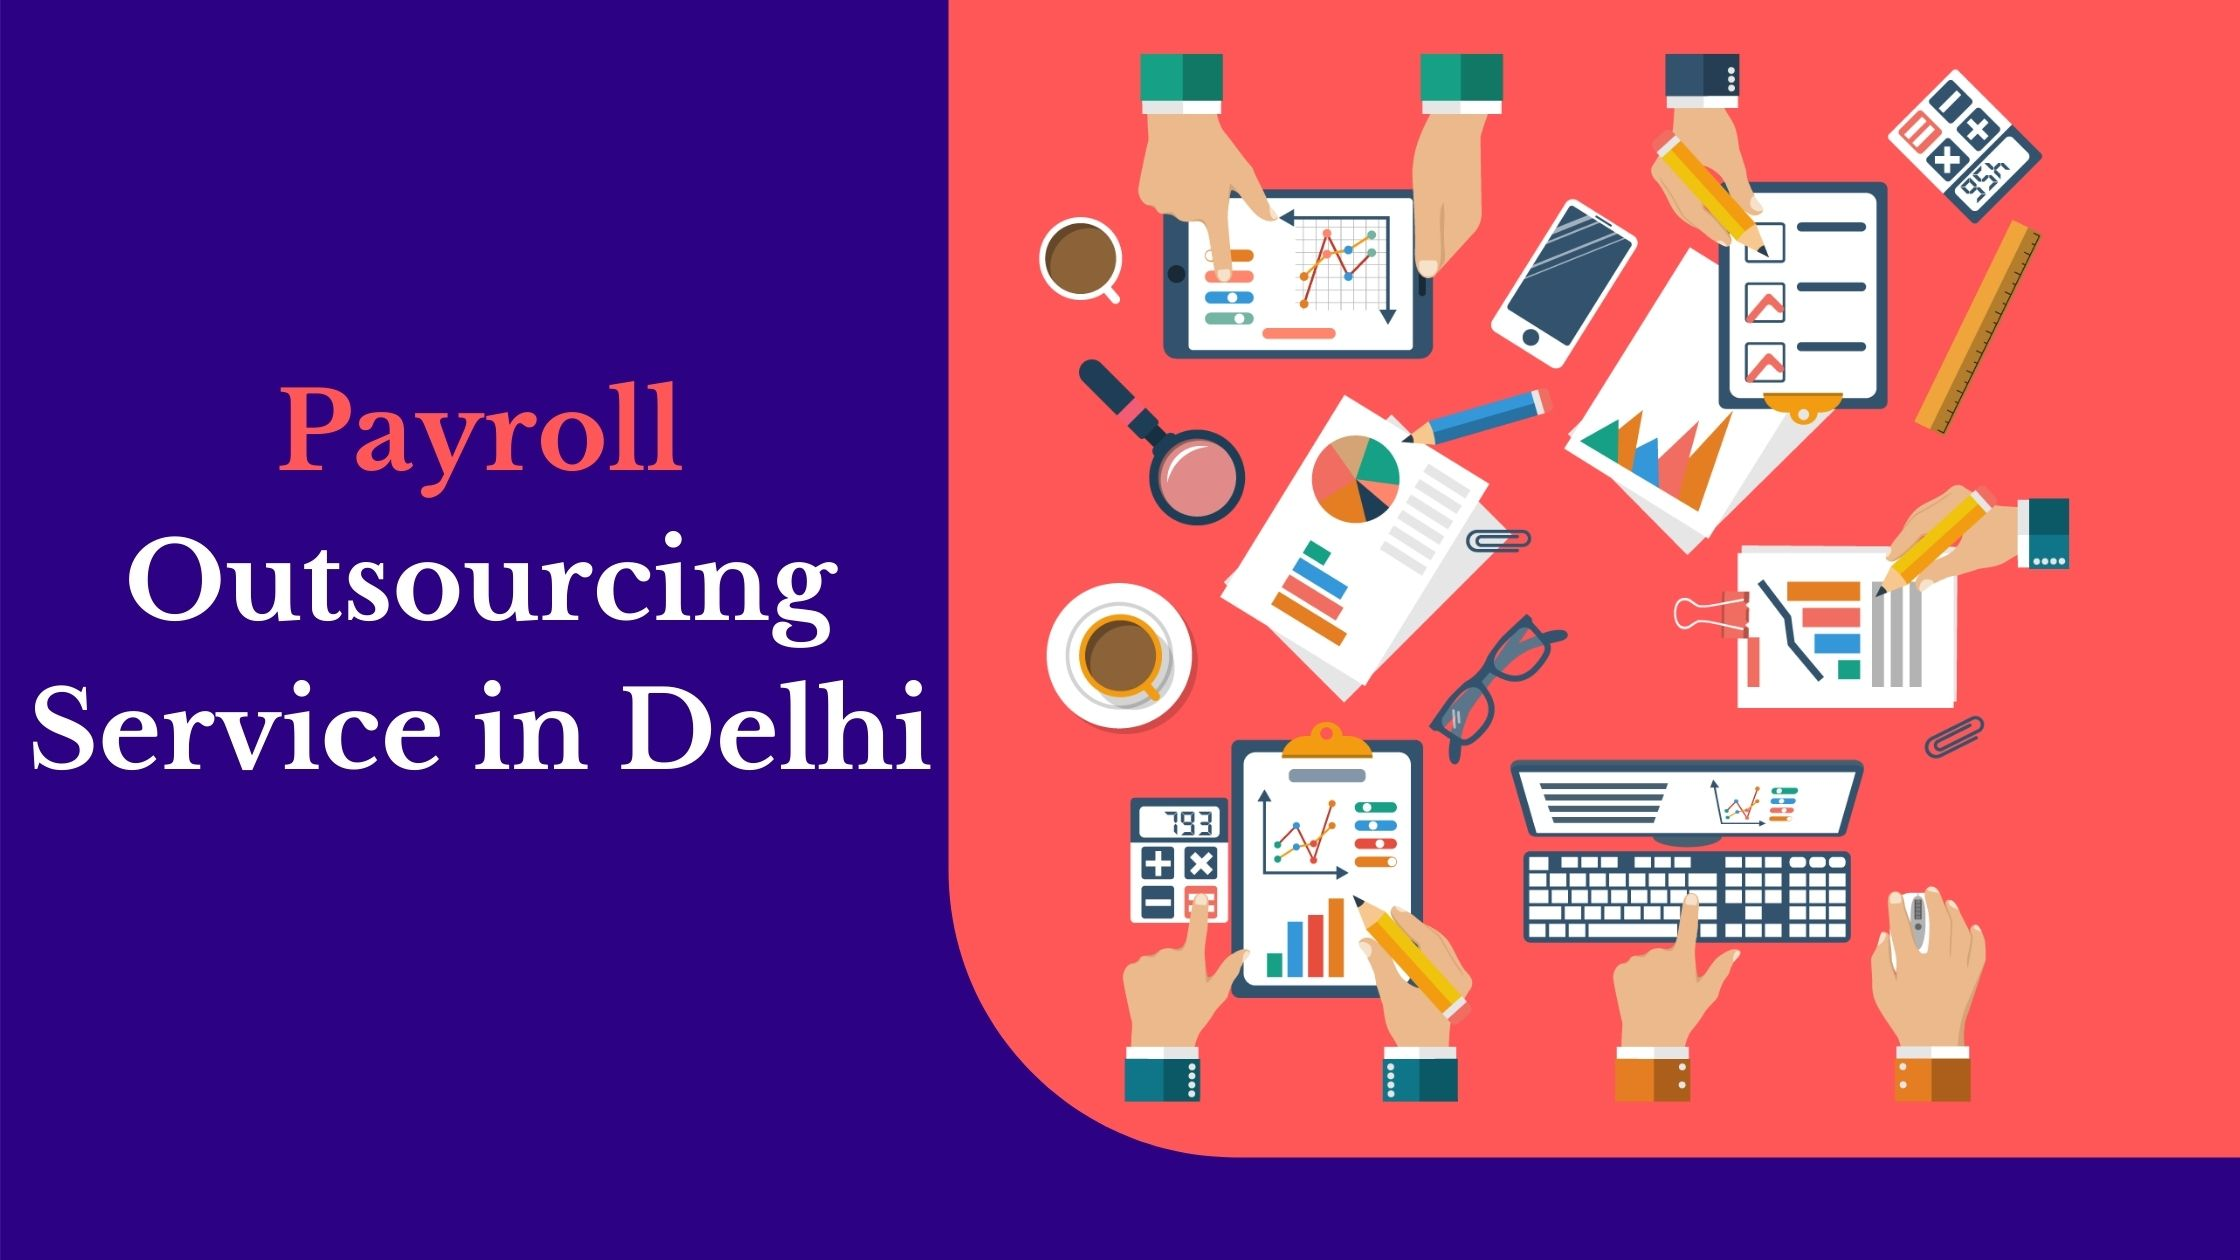 One of the best Payroll outsourcing service in Delhi  India